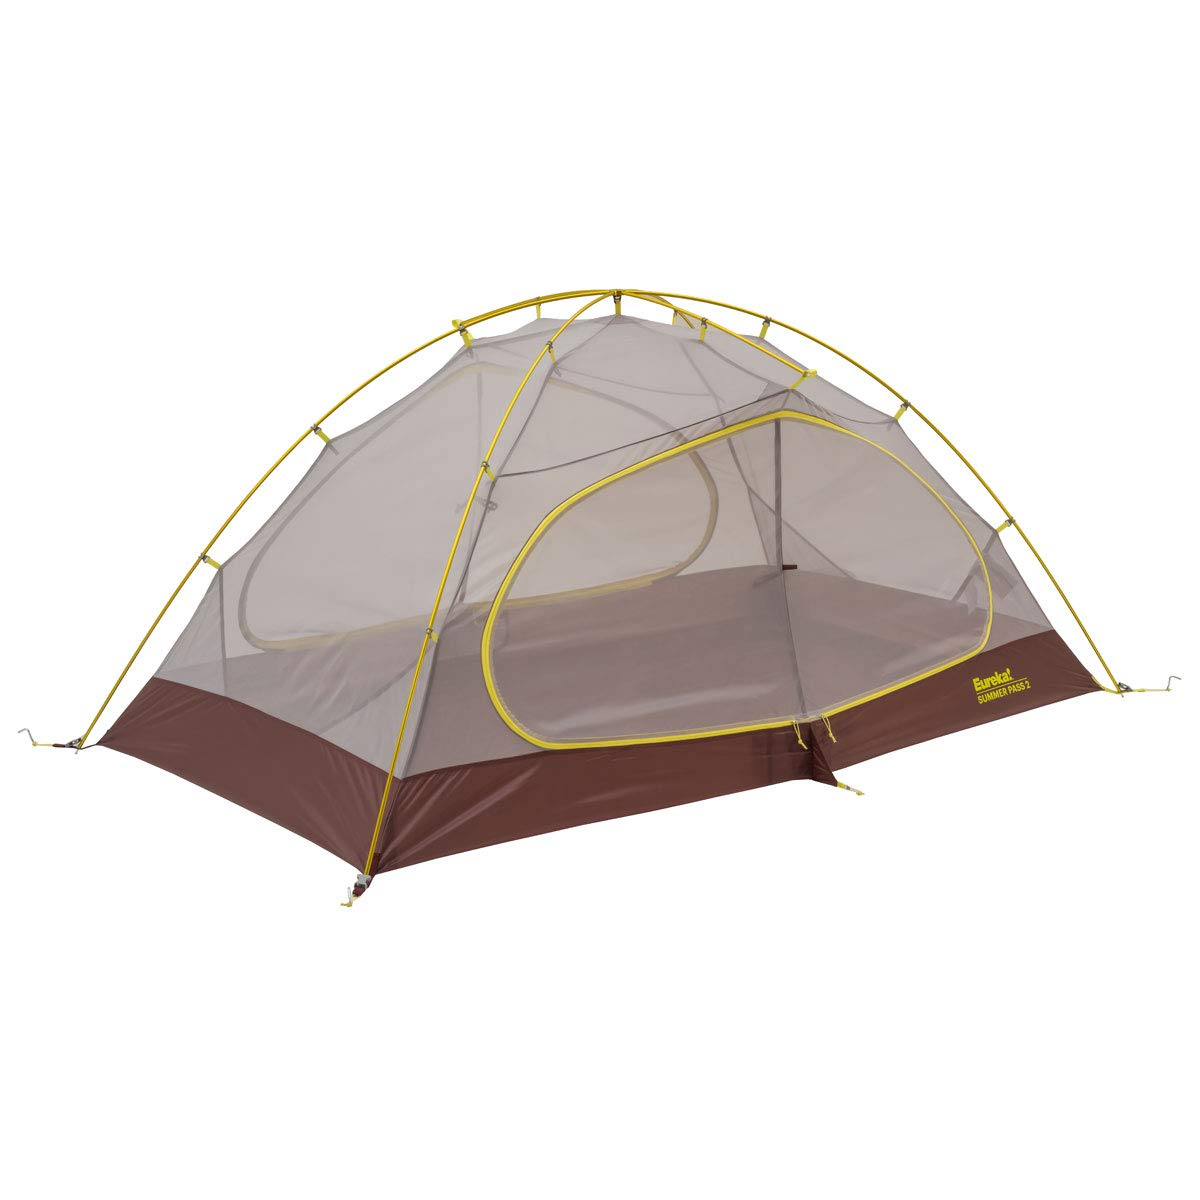 Eureka! Summer Pass 2 Two-Person, Three-Season Backpacking Tent